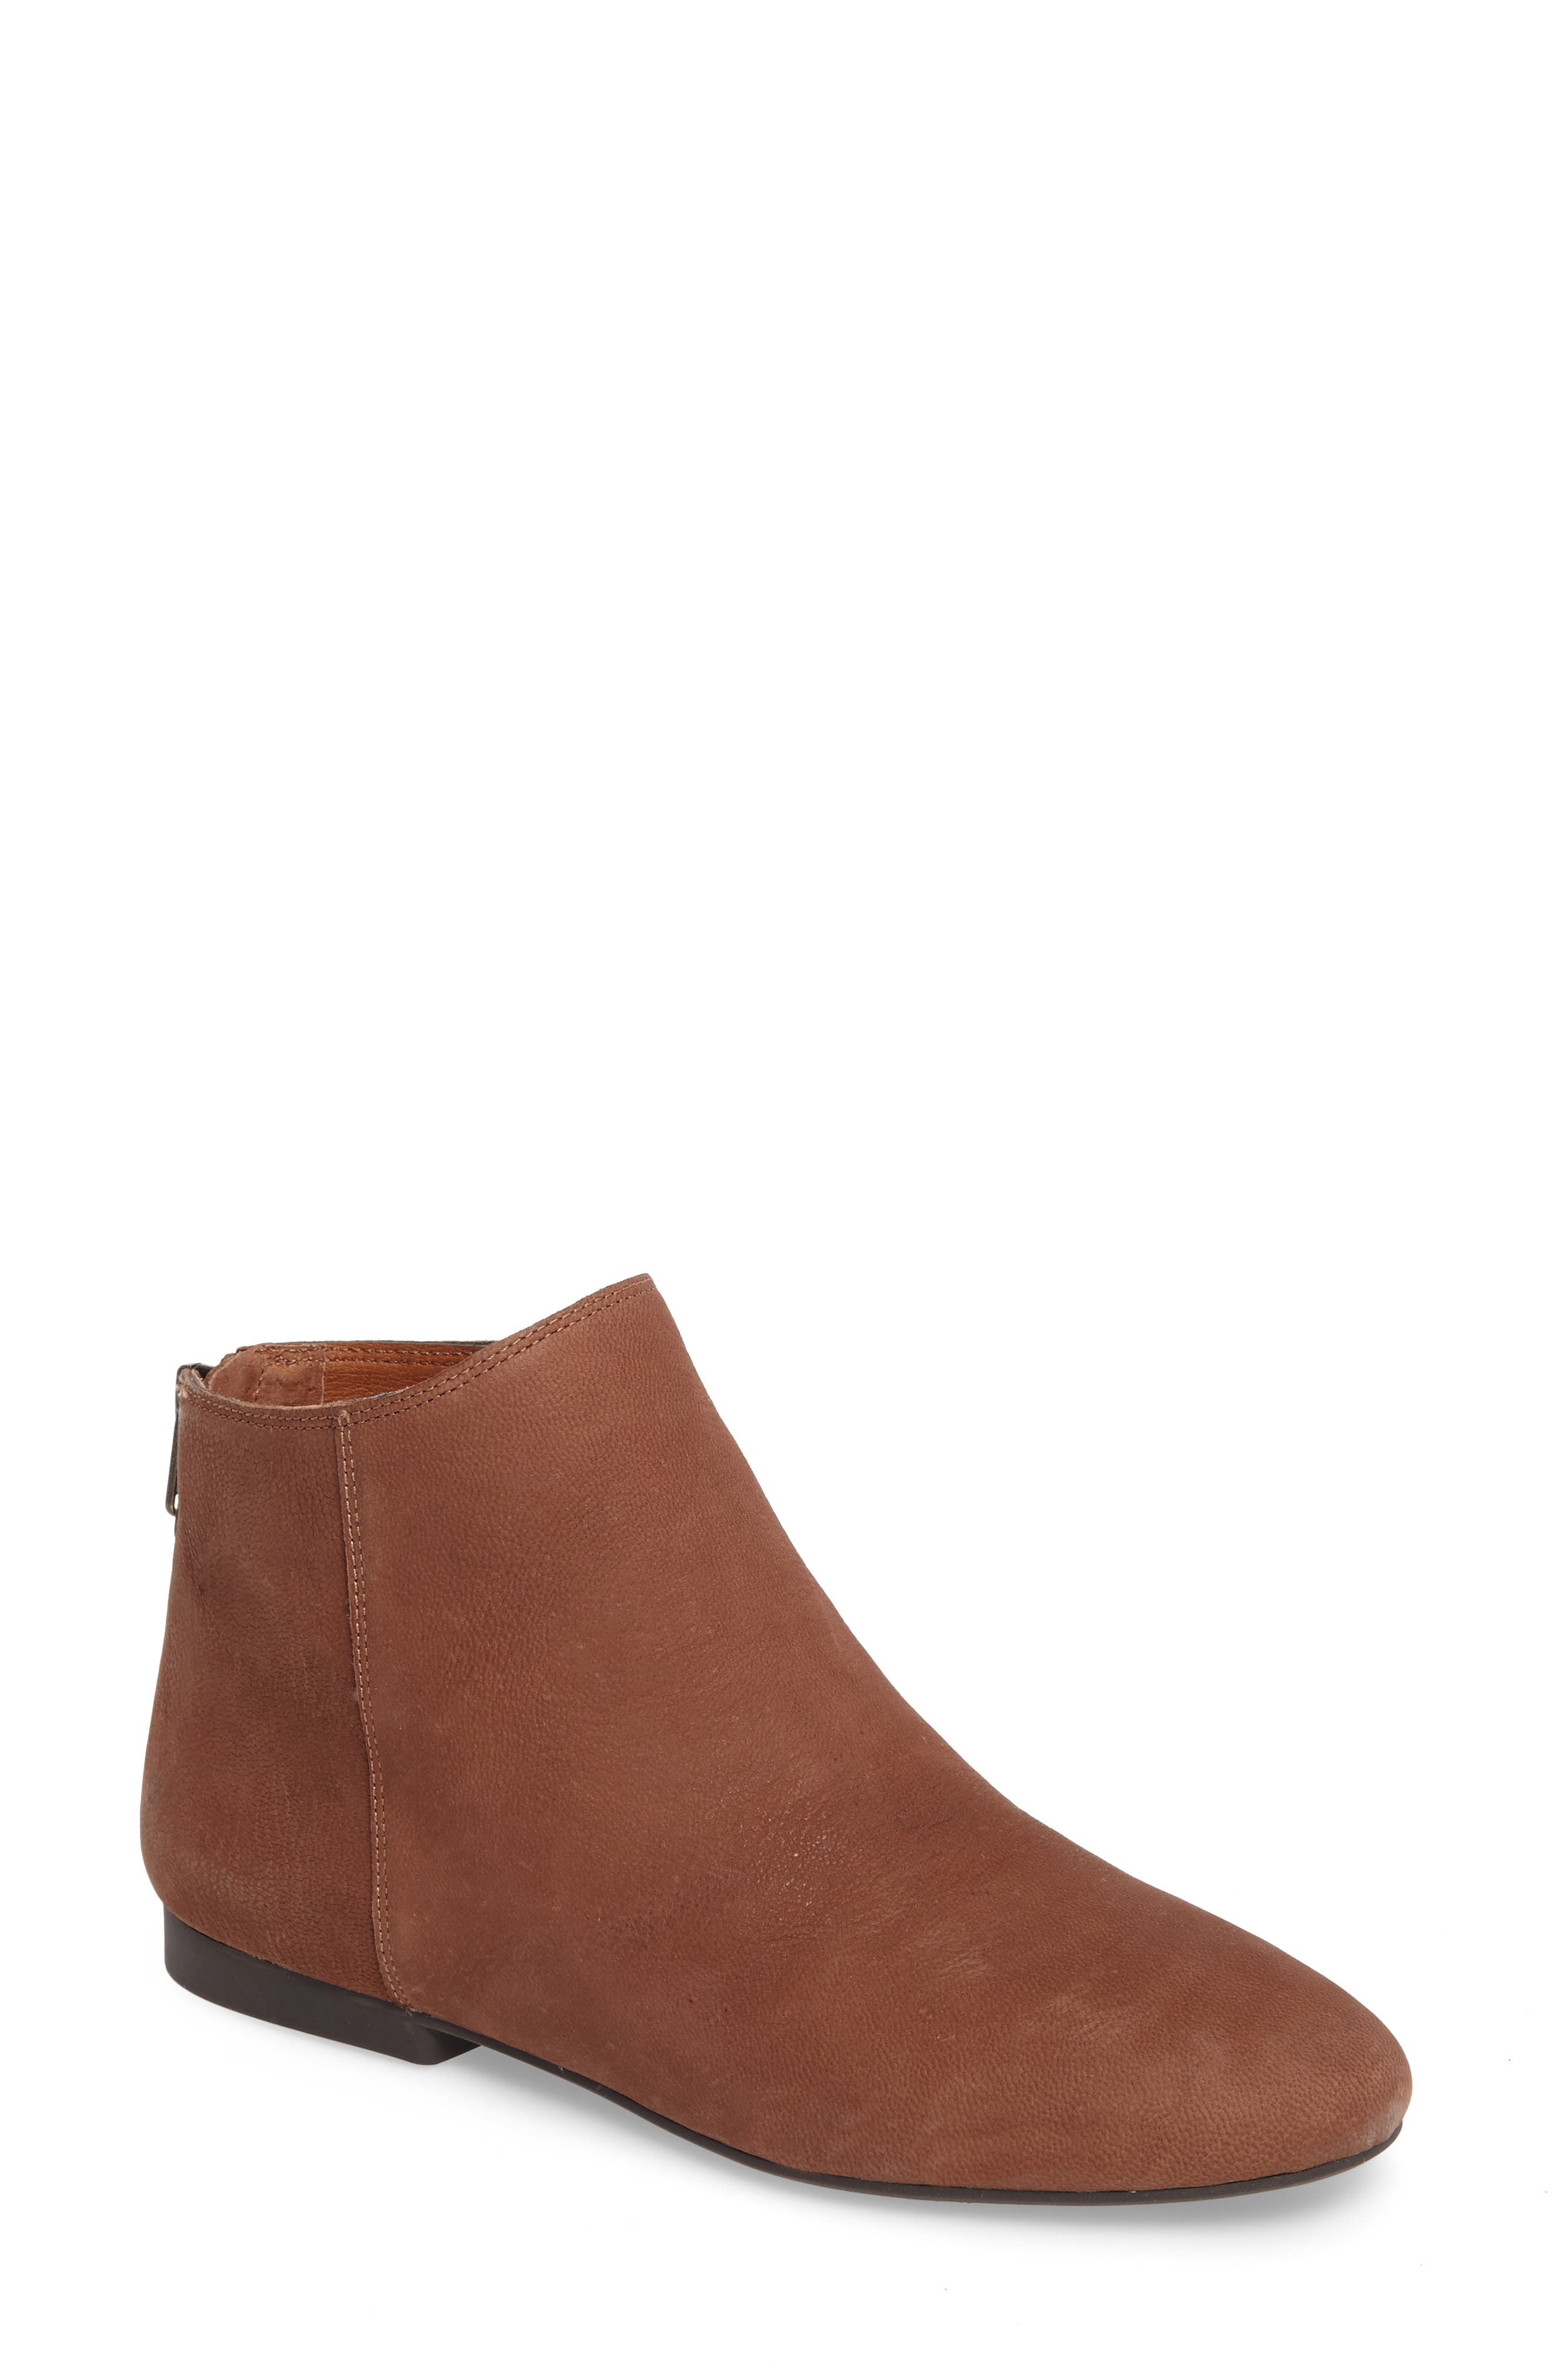 Gaines Bootie,                         Main,                         color, Toffee Leather